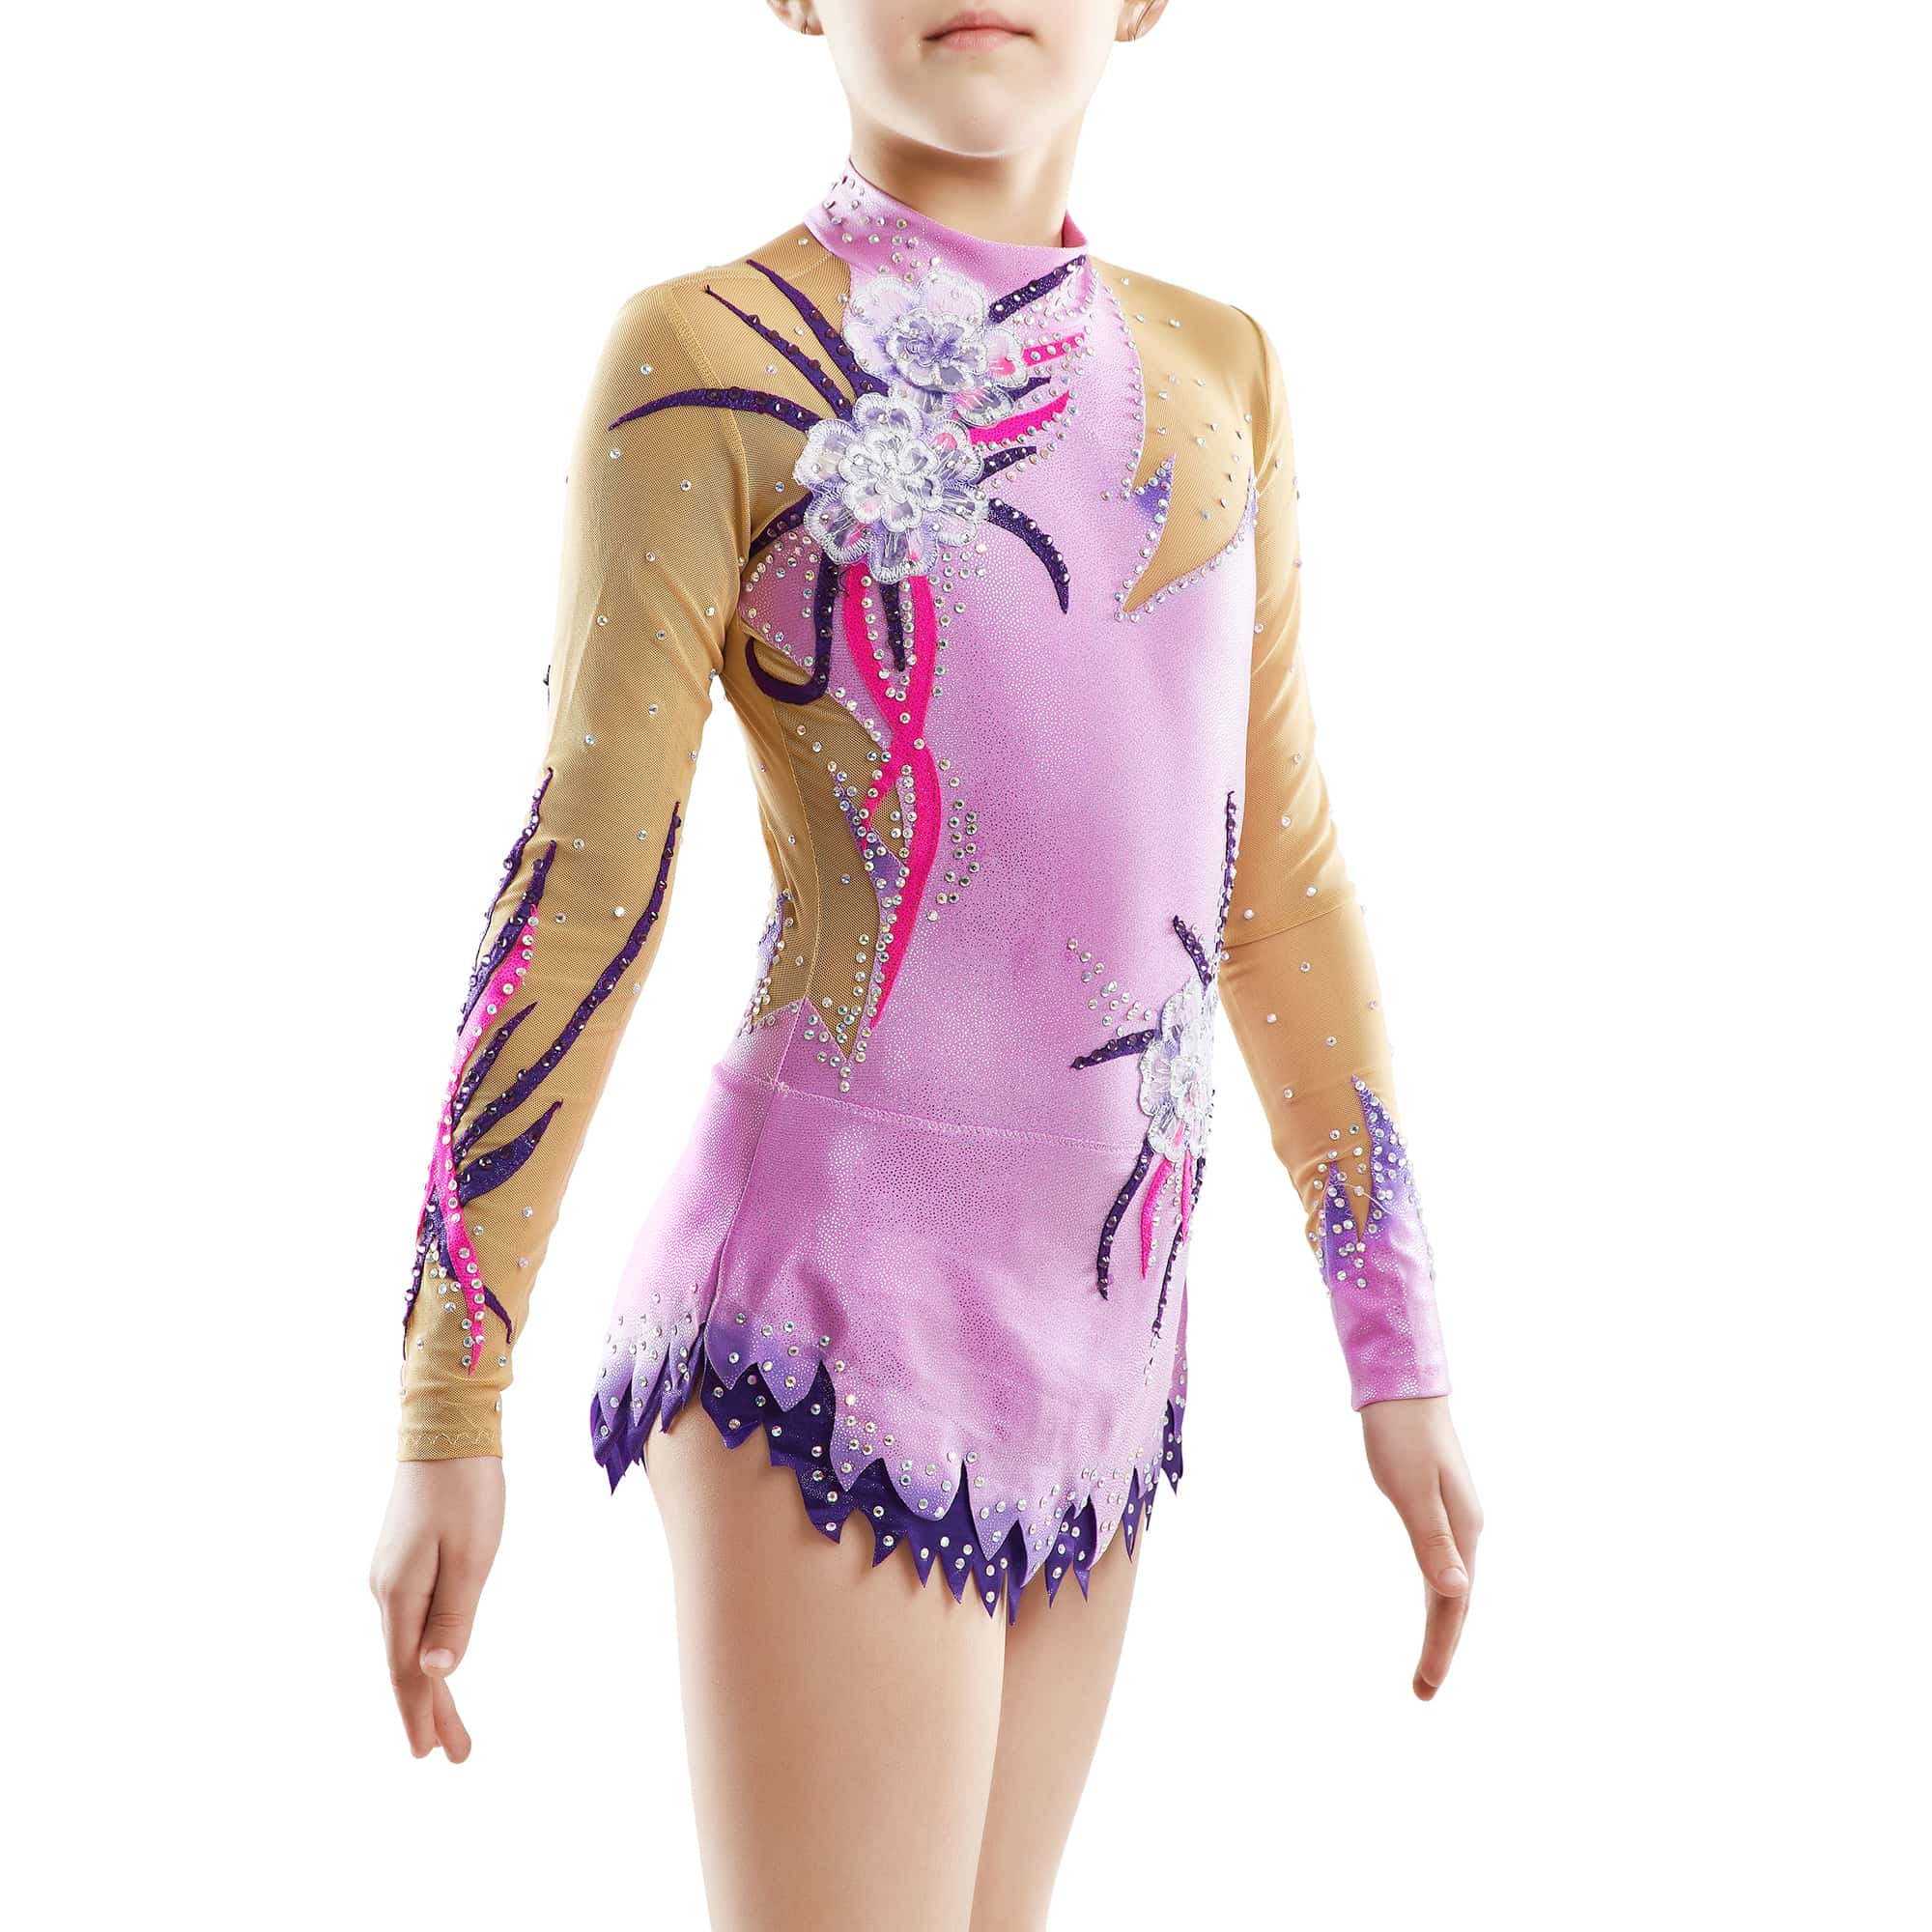 Side view of the lilac, dark purple, magento gymnastics leotard № 165 for competitions